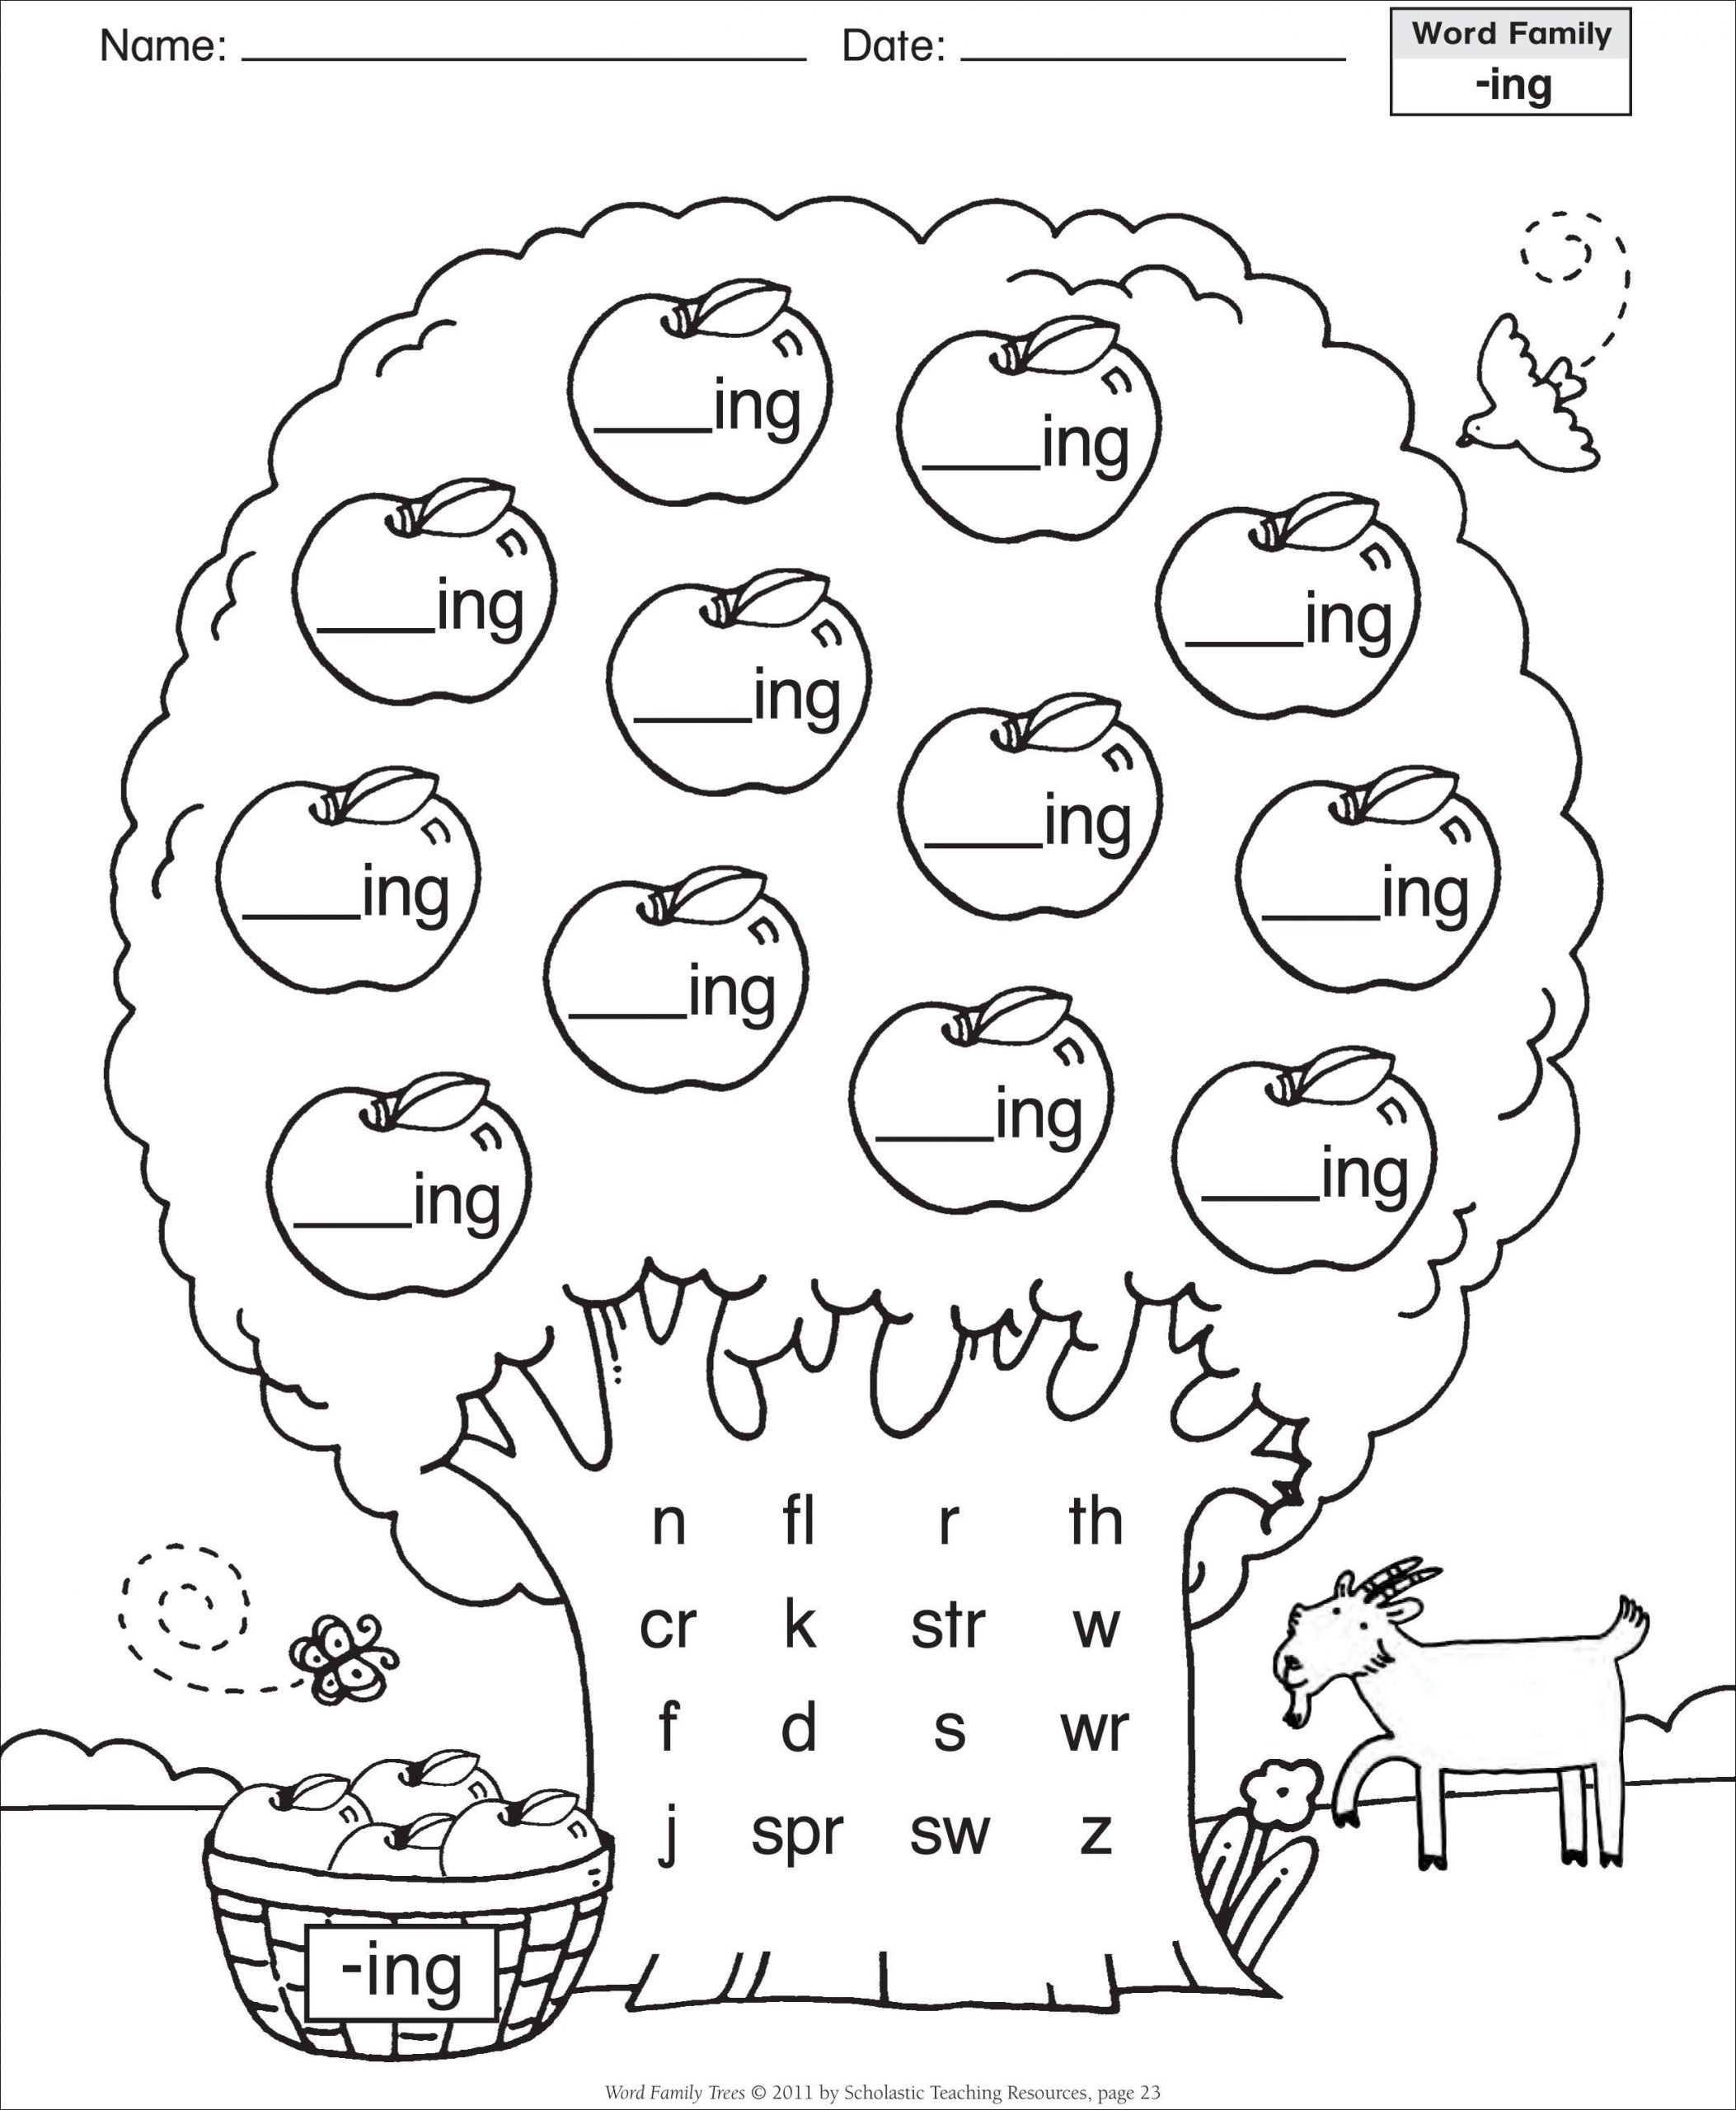 Ing Word Family Worksheets Word Family Worksheets